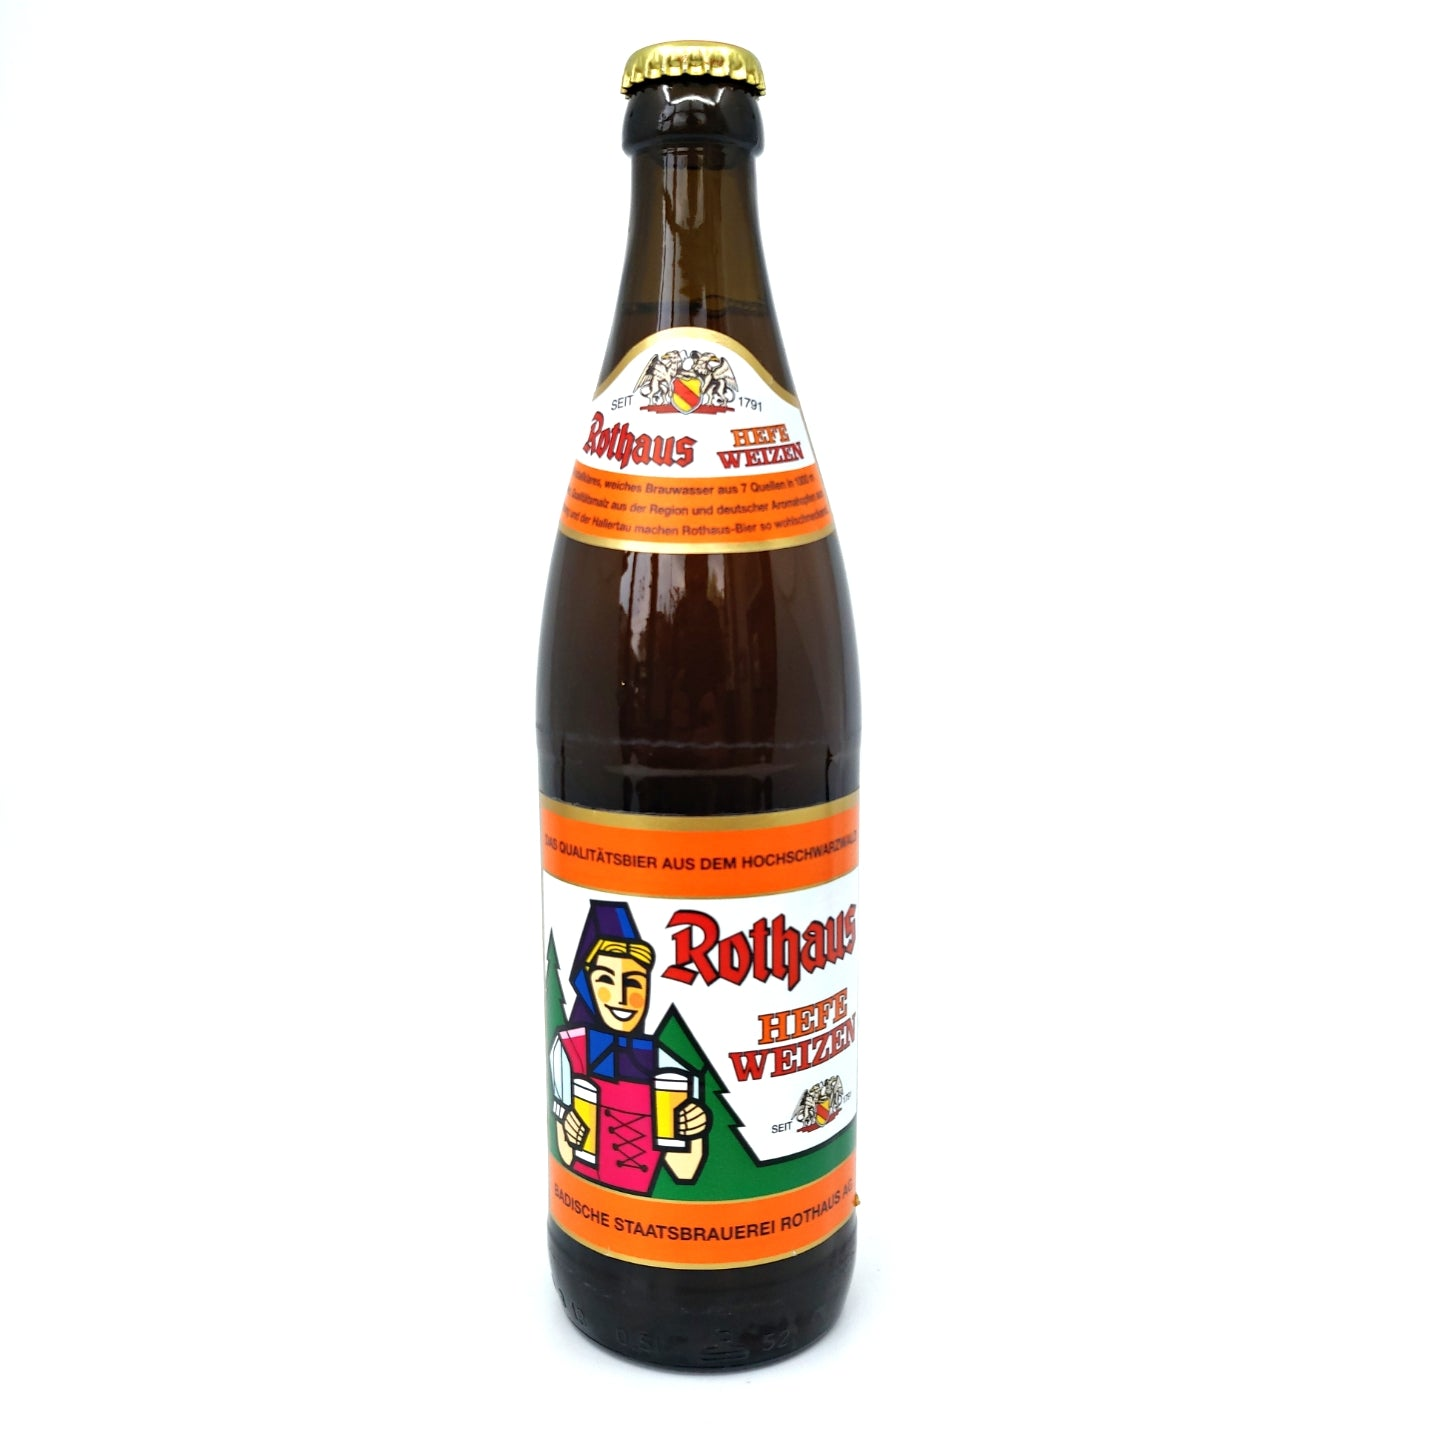 Rothaus Weizenzapfle Hefeweisse 5.4% (500ml)-Hop Burns & Black